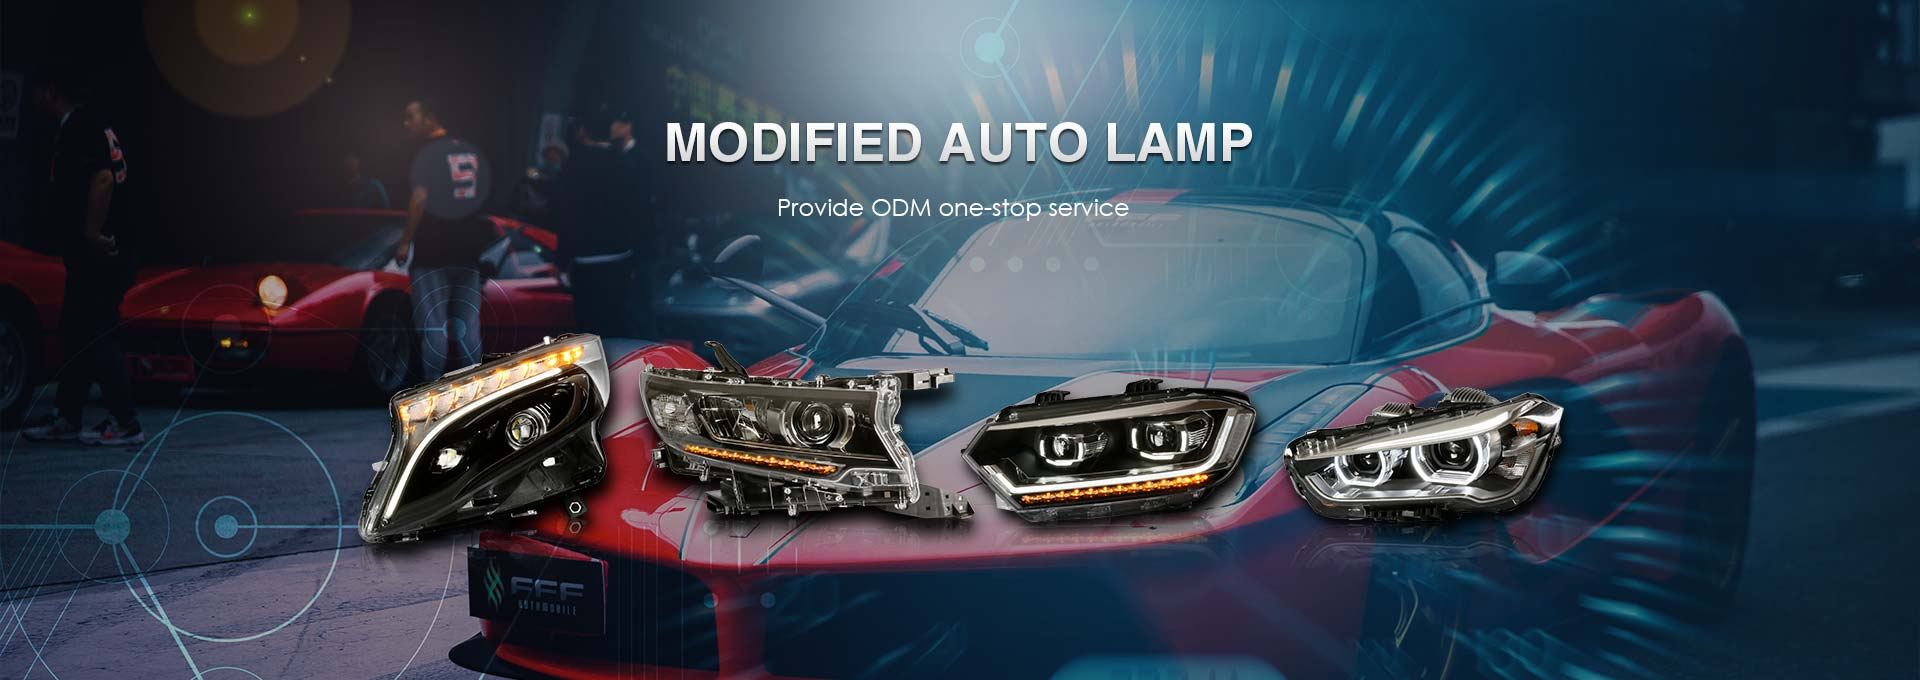 Modified Auto Lamp